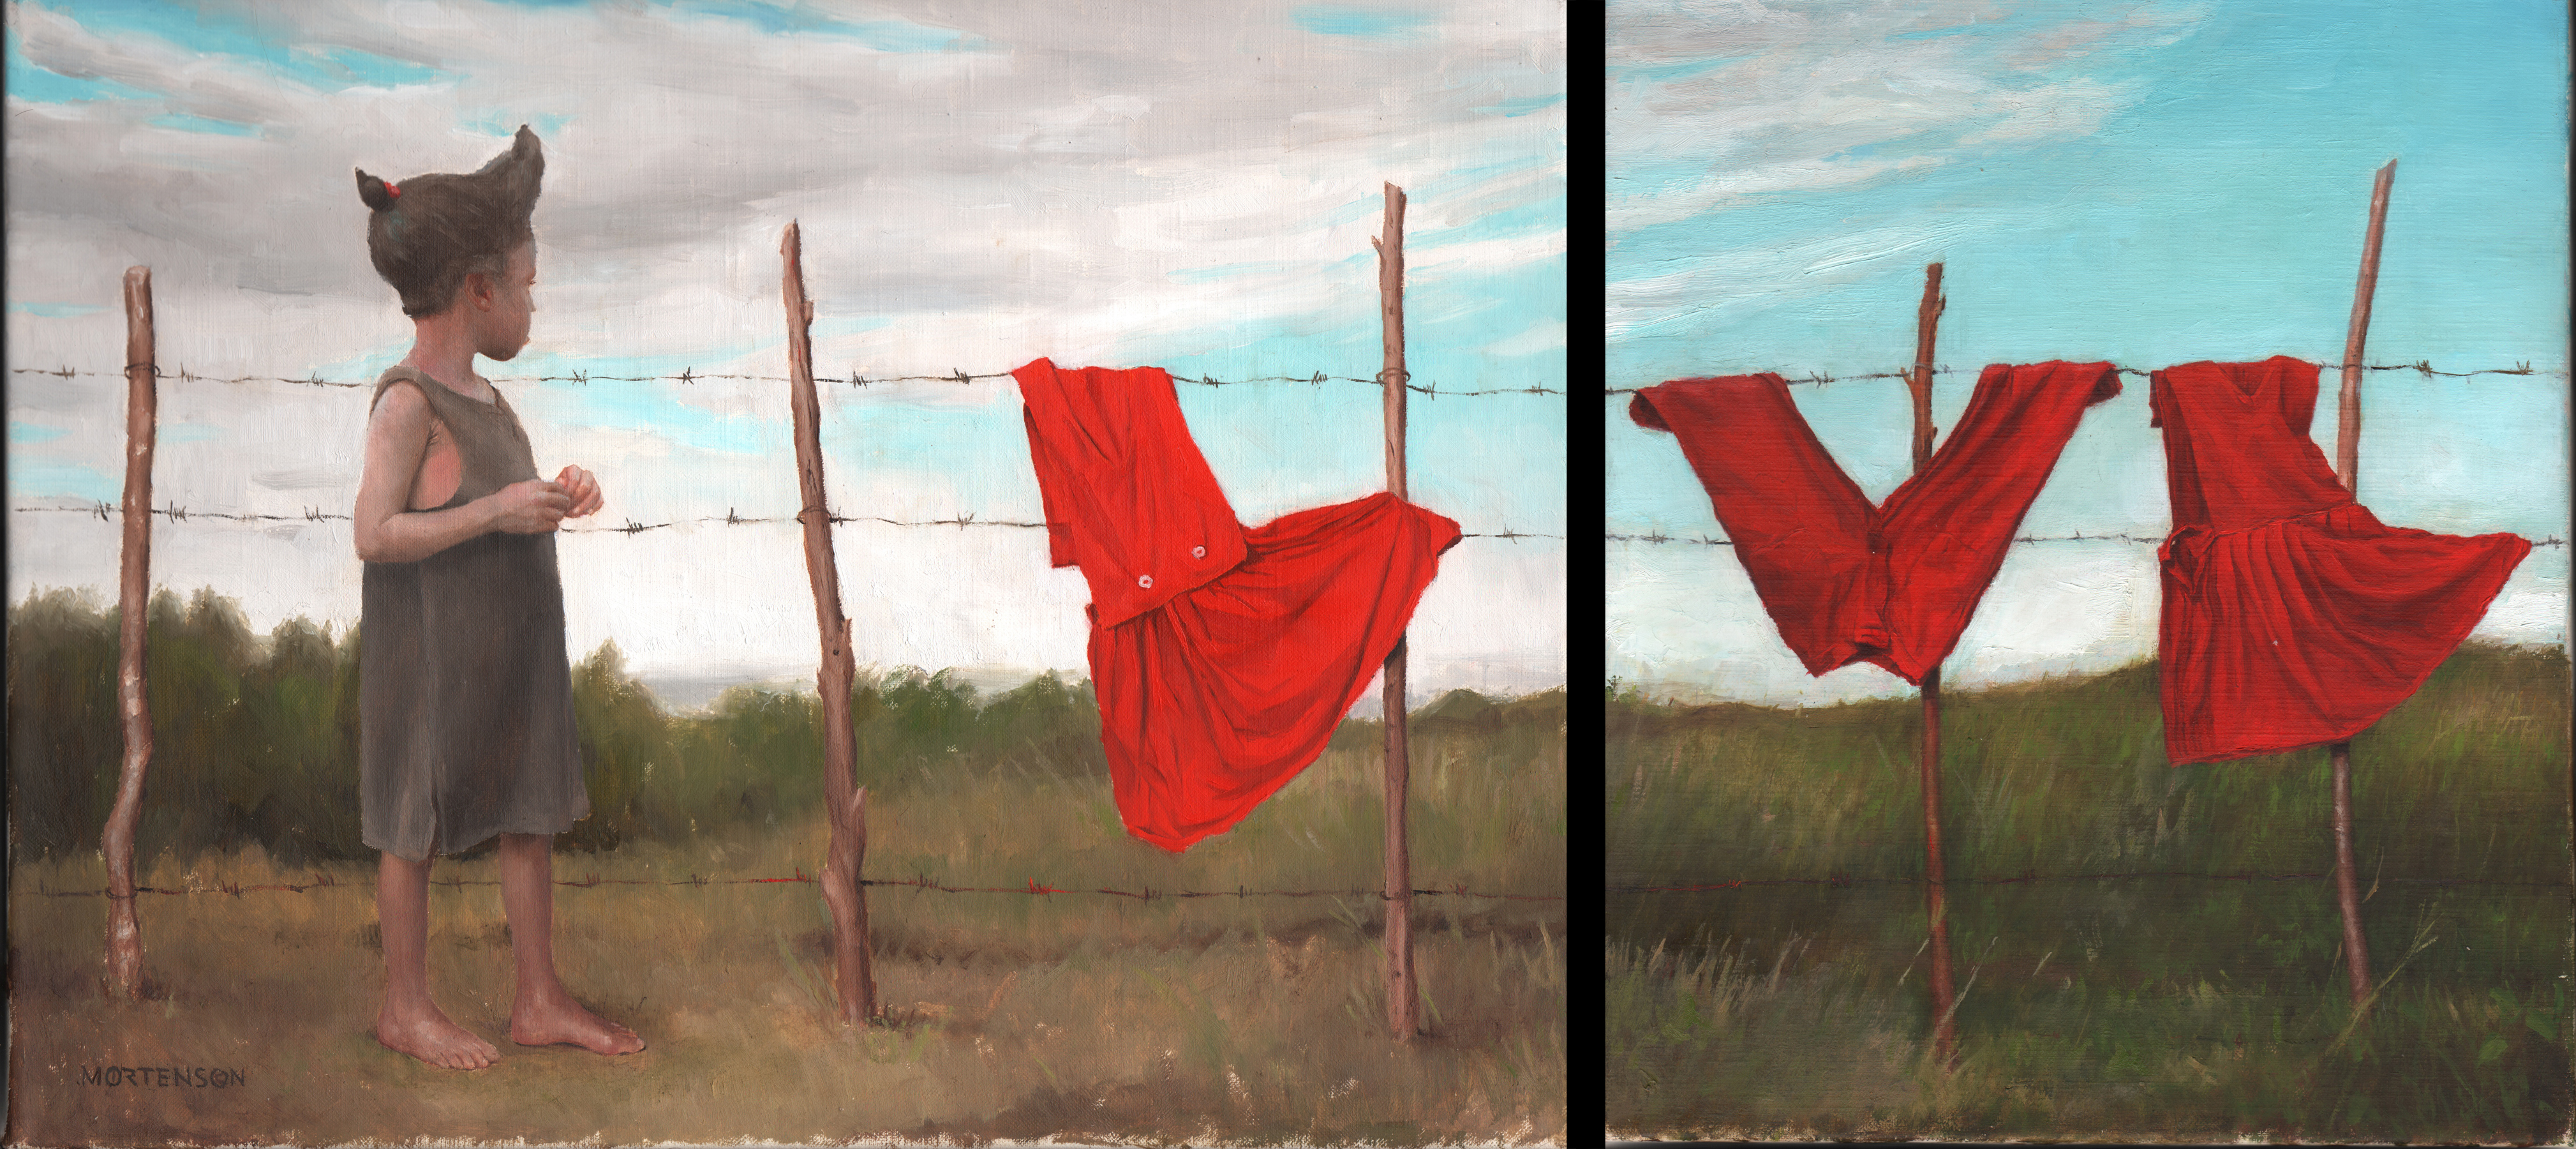 """""""School Laundry,"""" 2015, by Gregory Mortenson (b. 1976). Oil on linen, 12 by 16 and 12 by 10 inches. (Courtesy of Gregory Mortenson)"""